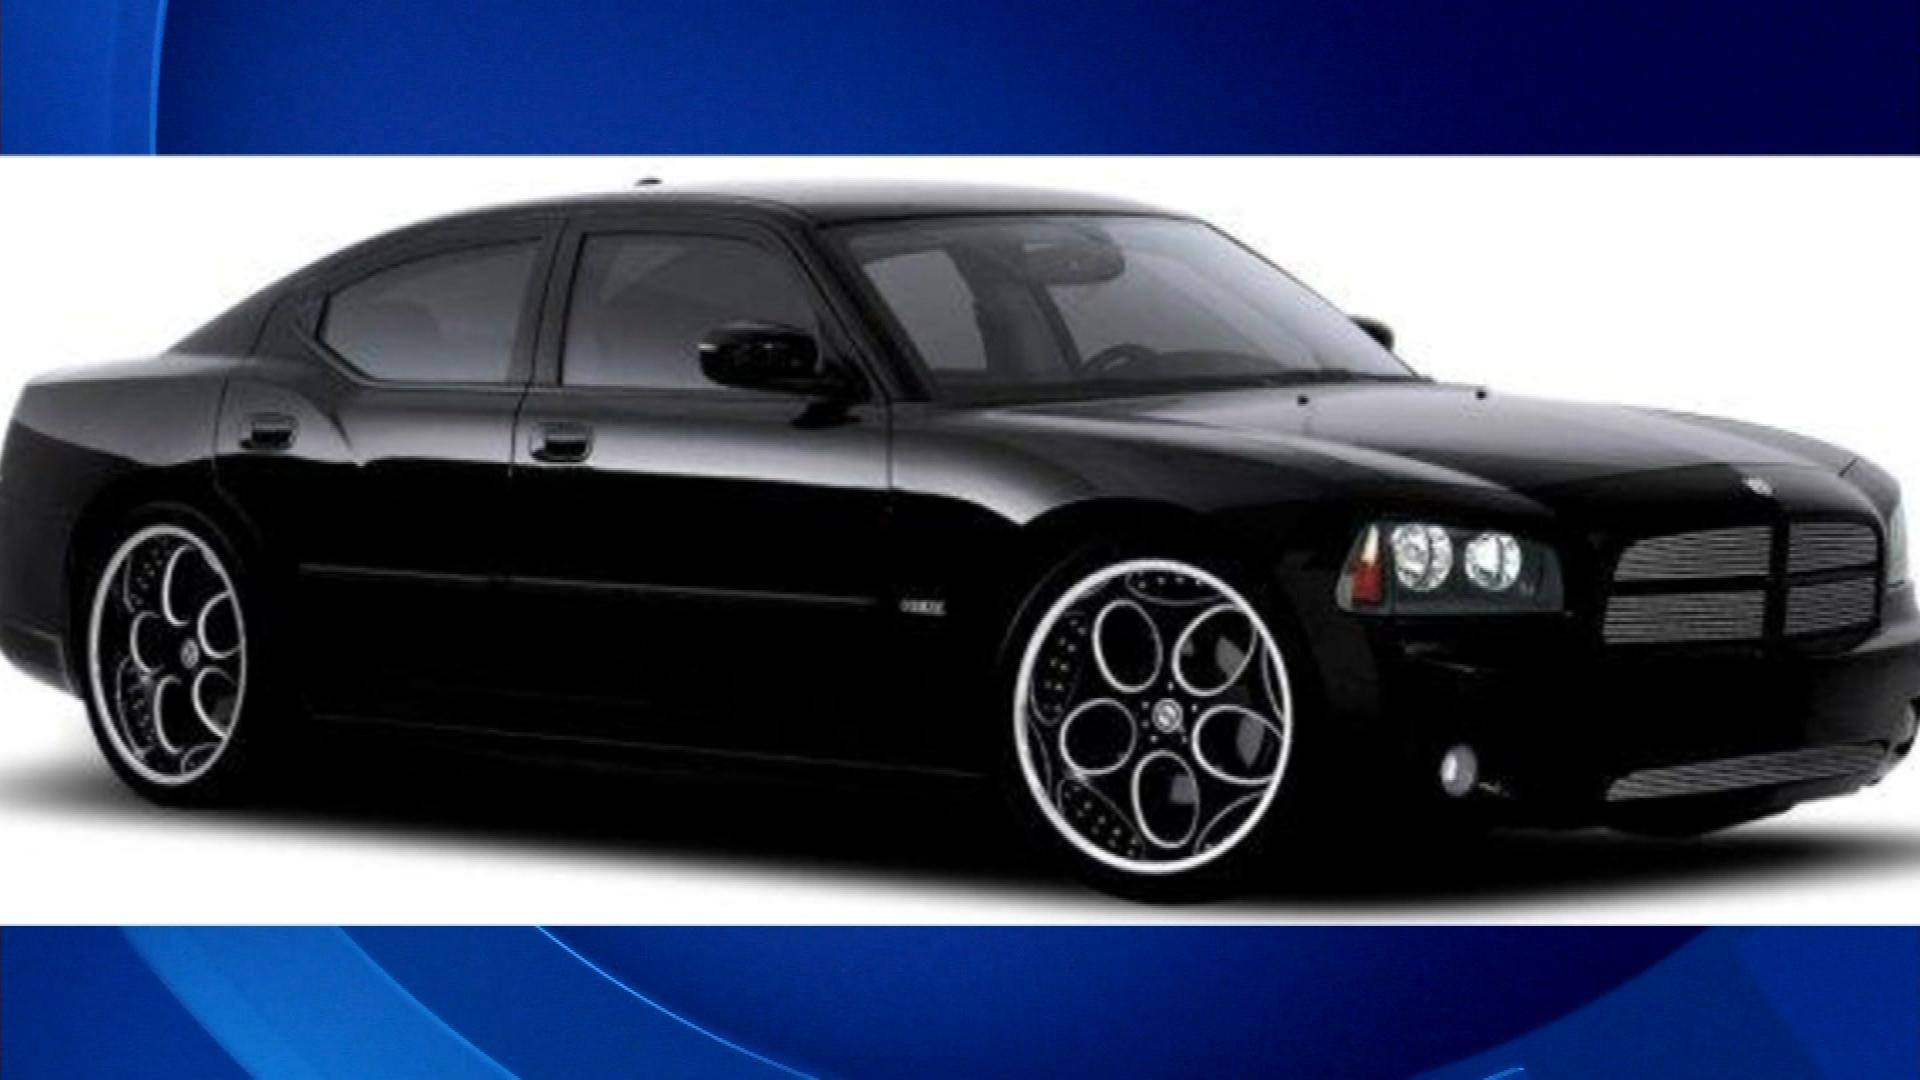 A Dodge Charger similar to the suspect's vehicle (credit: CBS)